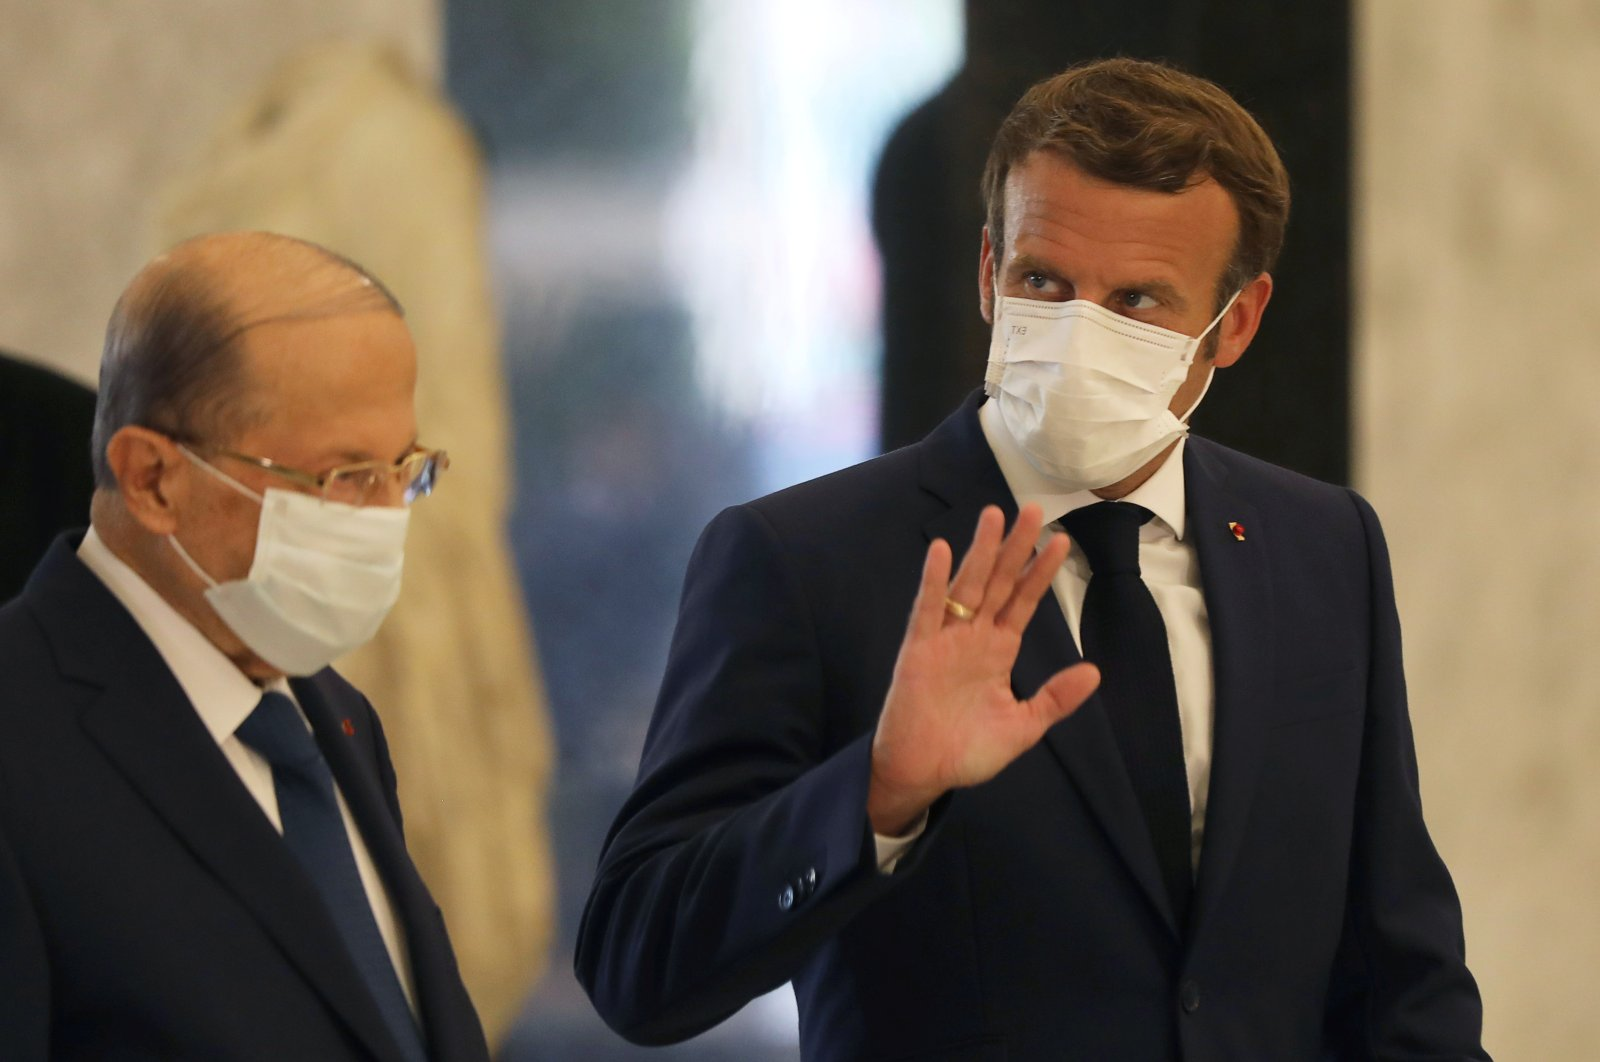 French President Emmanuel Macron and Lebanese President Michel Aoun wear protective face masks as they meet following the explosion in Beirut's port area, at the presidential palace in Baabda, Lebanon, Aug. 6, 2020. (Reuters Photo)